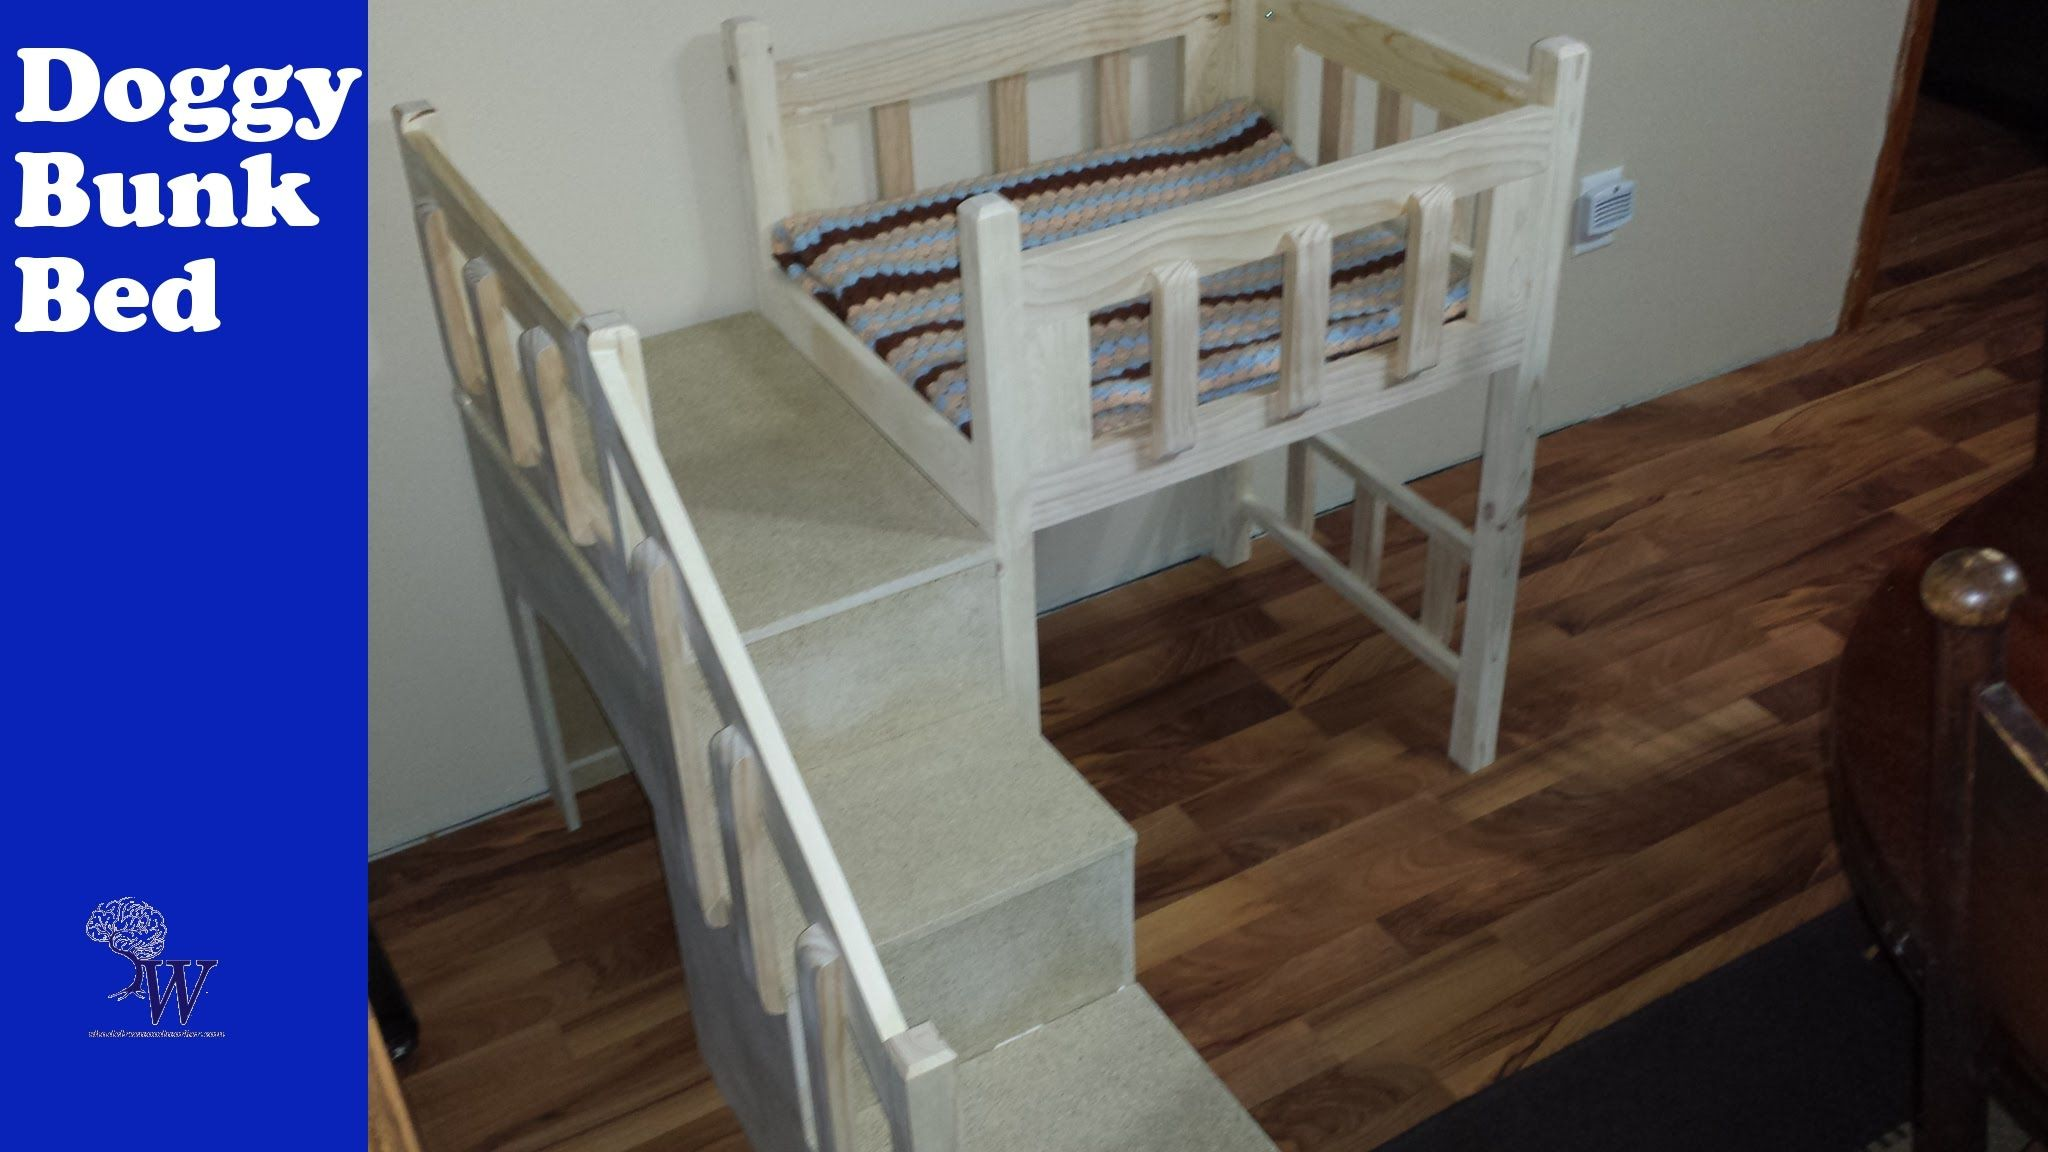 Dog Bunk Bed Crafts Pinterest Dogs Dog Bed And Pets